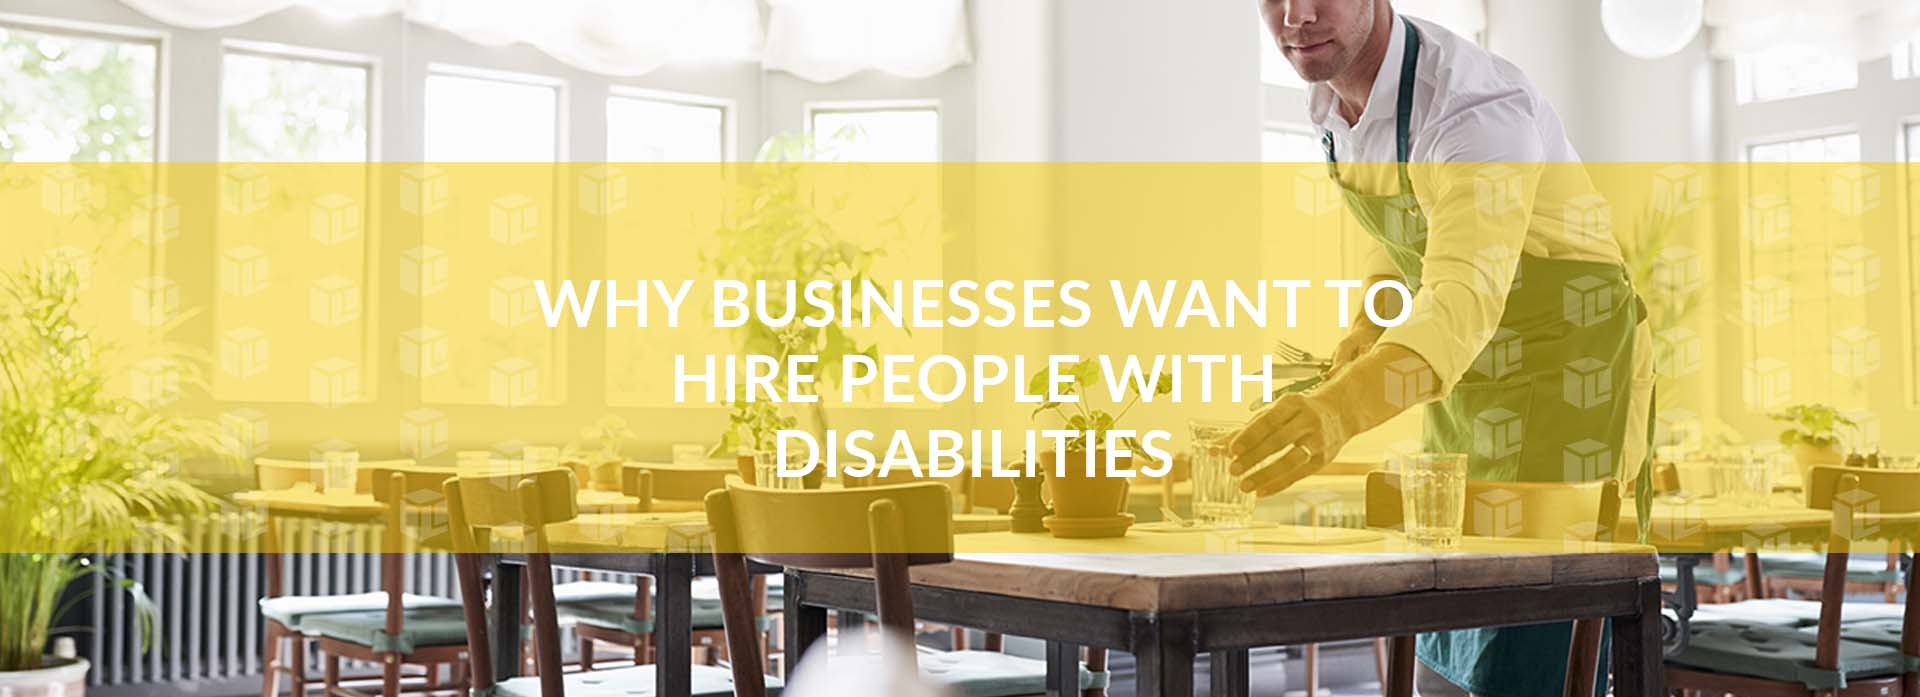 Why Businesses Want To Hire People With Disabilities